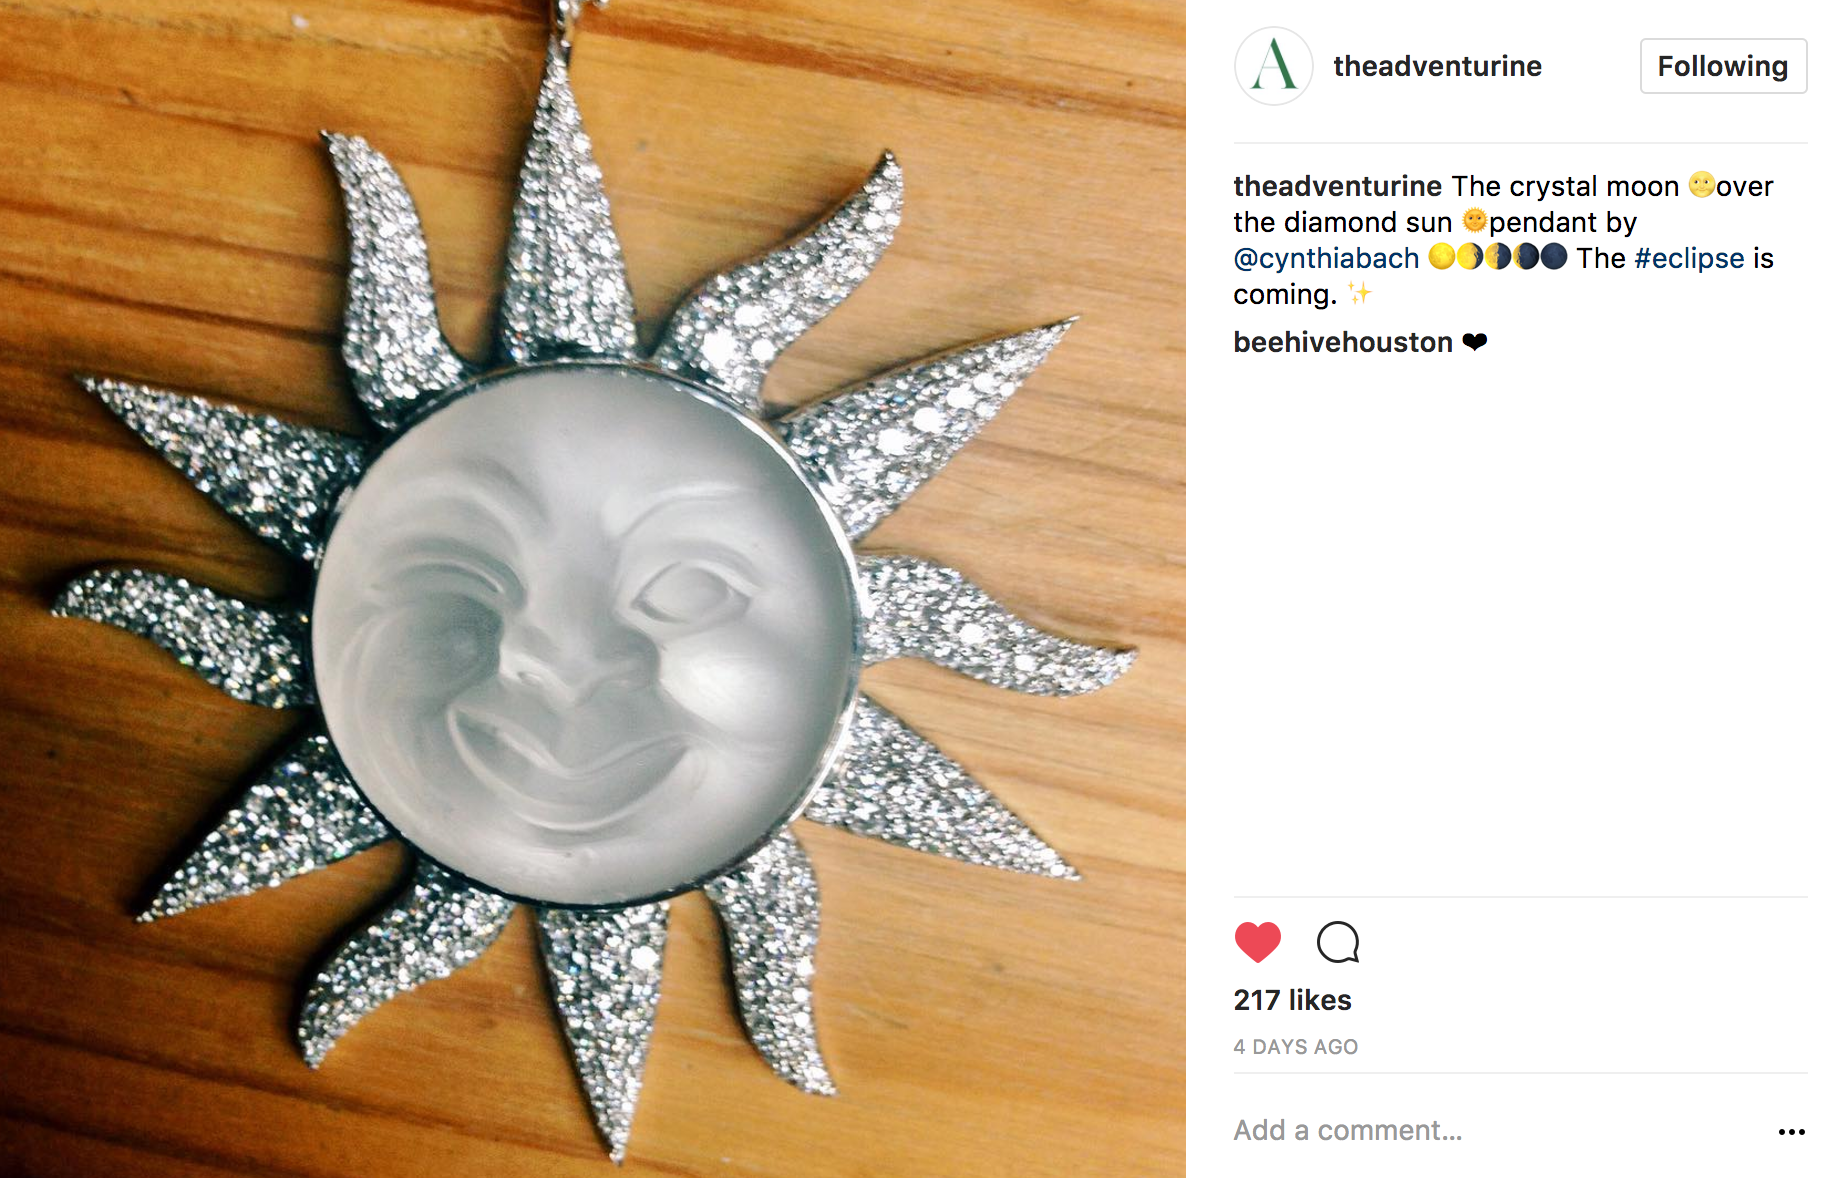 Instagram crystal moon over diamond sun